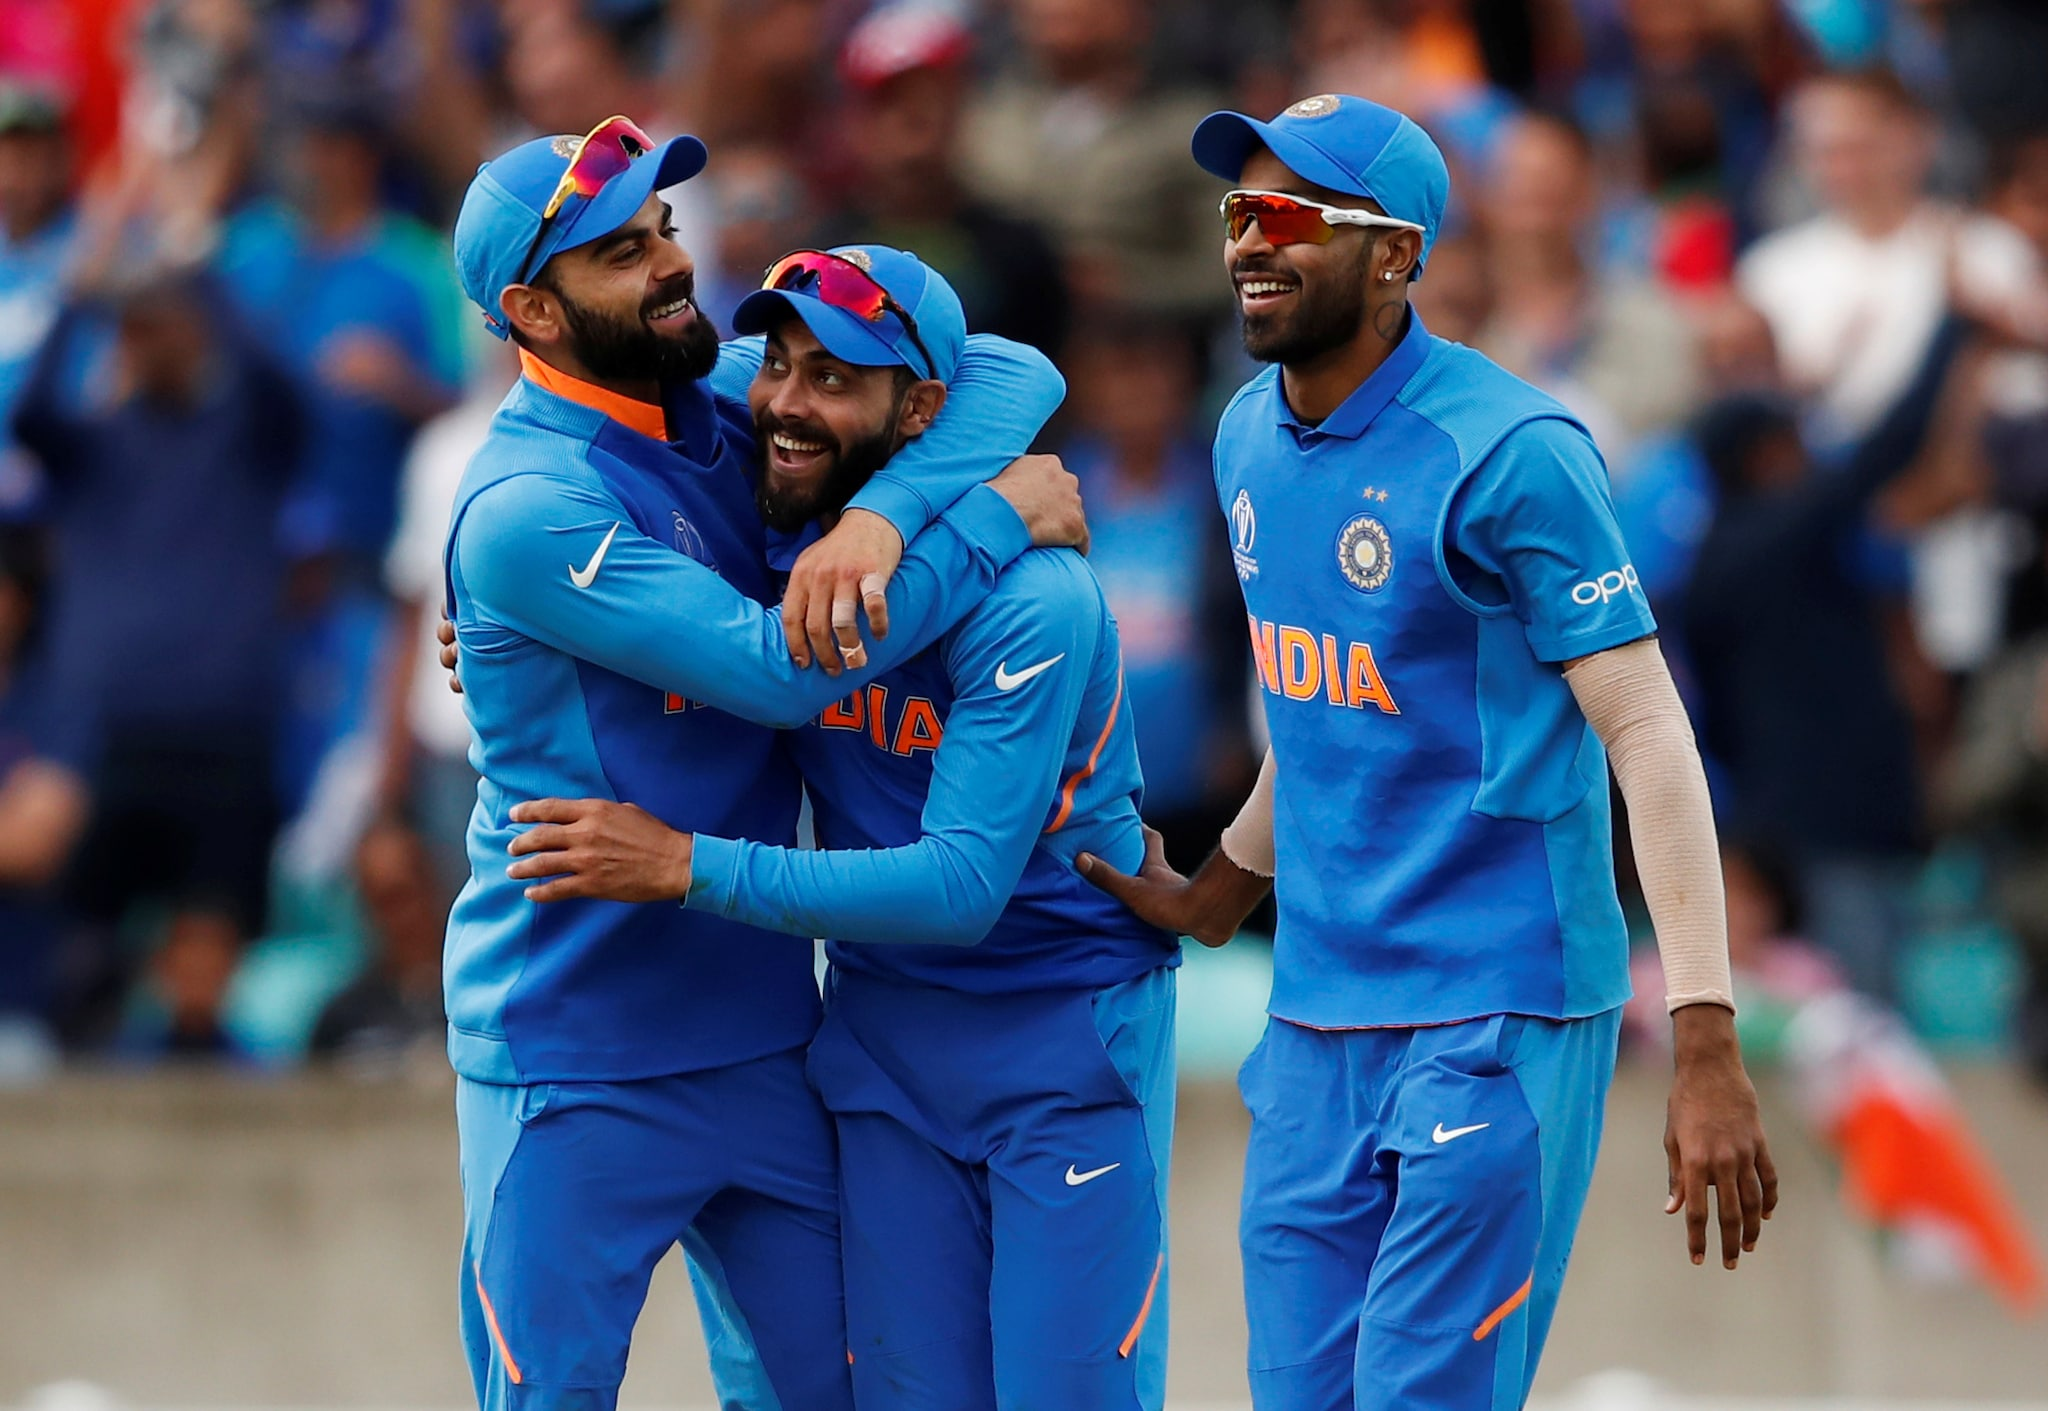 Cricket - ICC Cricket World Cup - India v Australia - The Oval, London, Britain - June 9, 2019 India's Ravindra Jadeja celebrates taking a catch off Australia's Glenn Maxwell with team mates Action Images via Reuters/Andrew Boyers